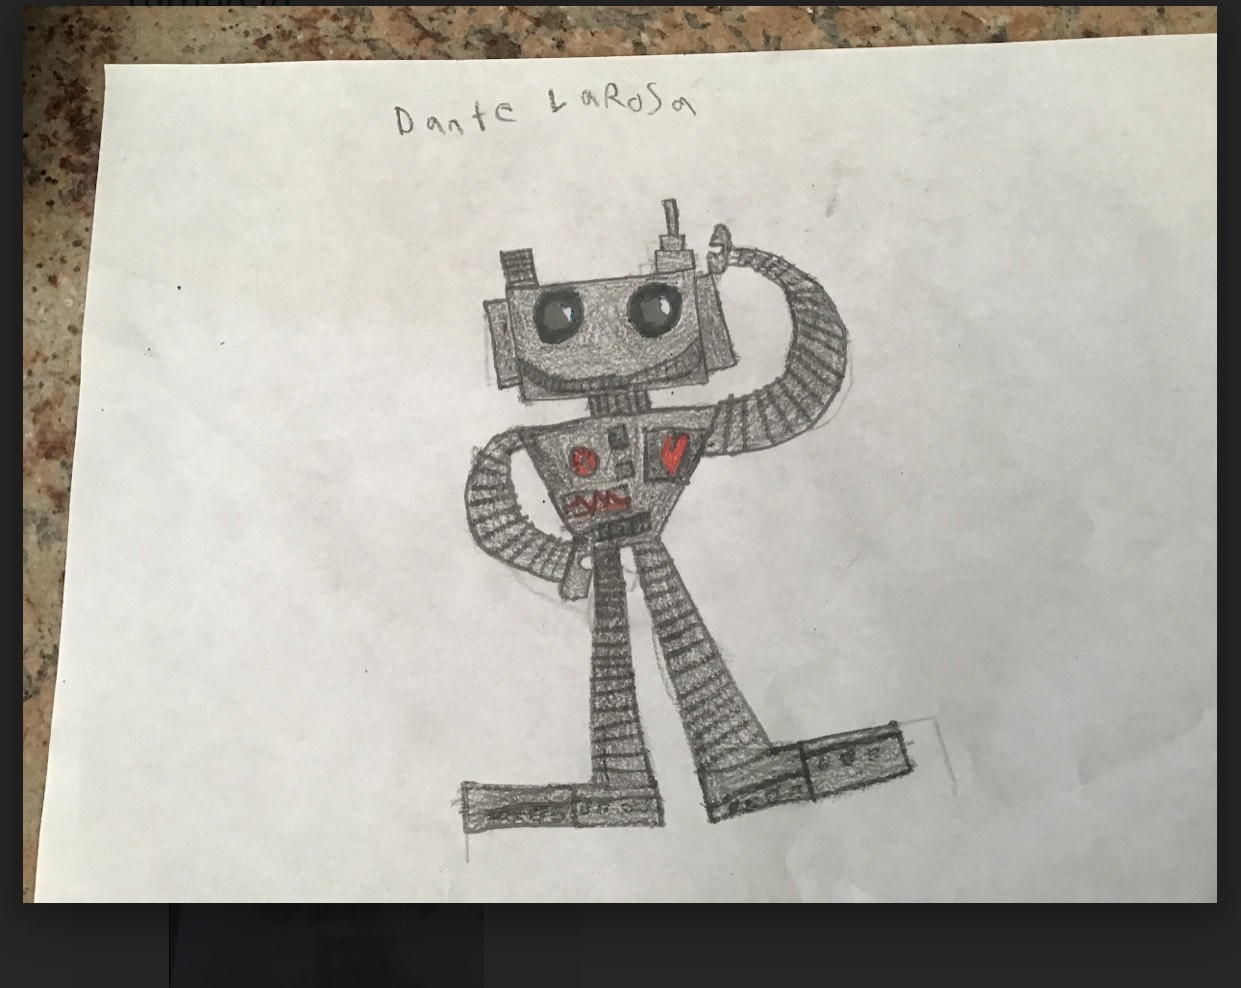 a silver robot drawing